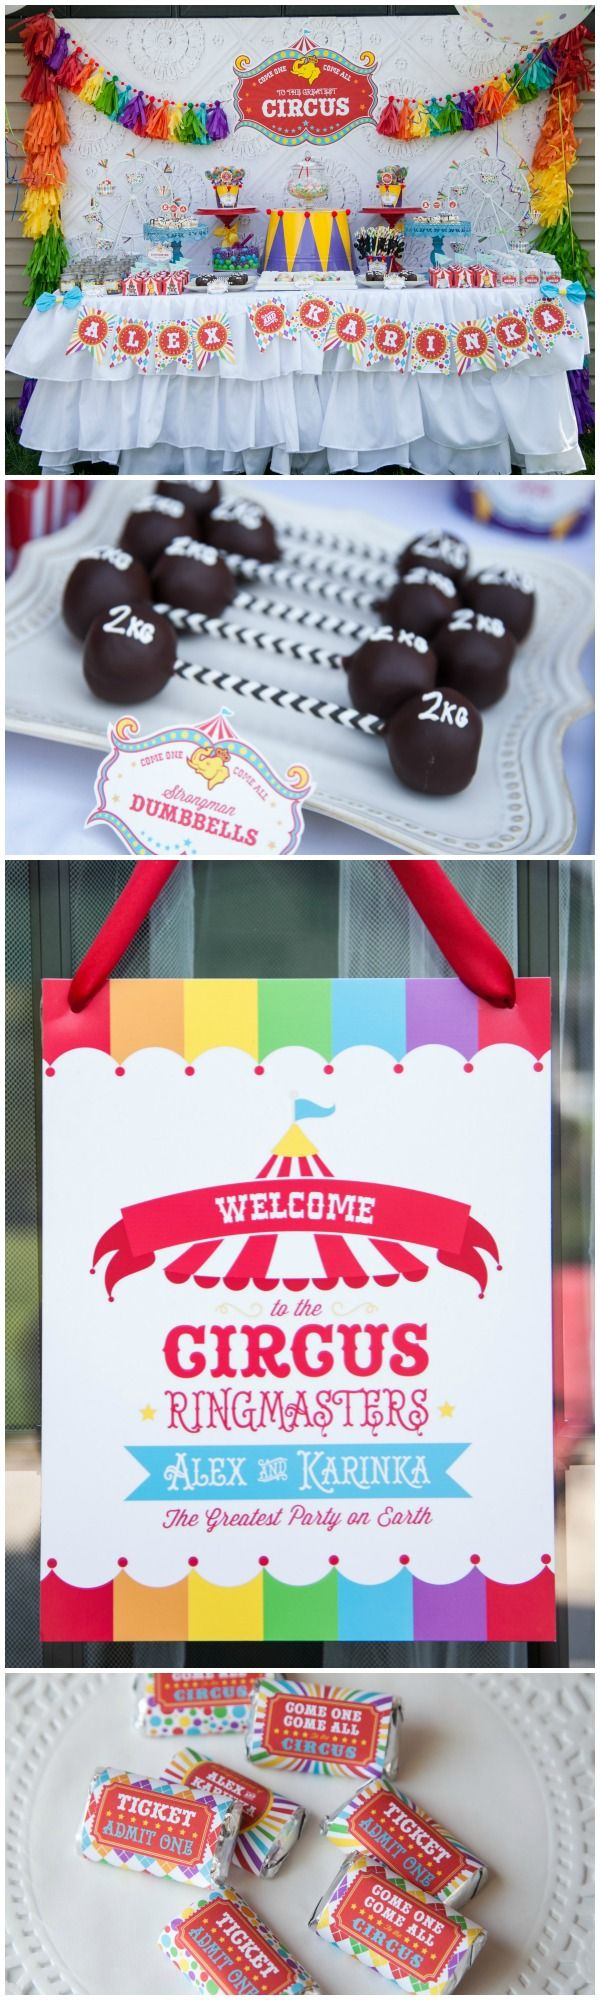 Circus Party Ideas (cutest strongman dumbbells!!)